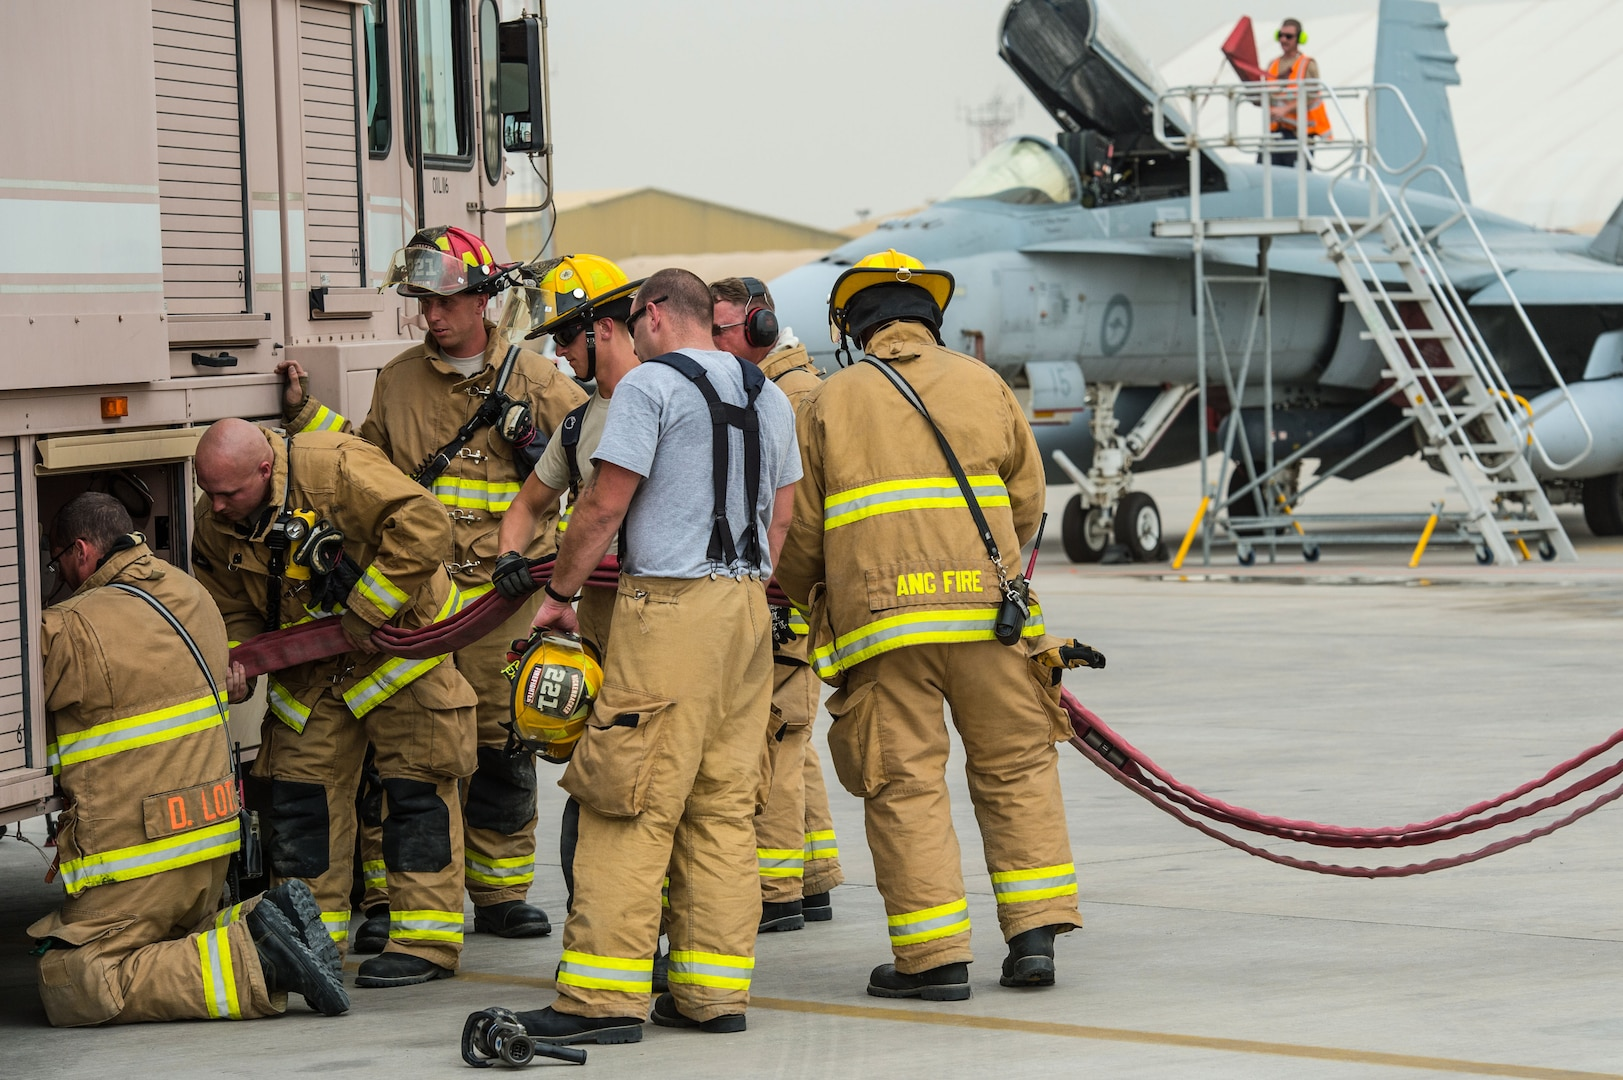 U.S. Air Force 380th Expeditionary Civil Engineer Squadron firefighters and Royal Australian Air Force firefighters store equipment on a firetruck after completing a Coalition training exercise at an undisclosed location in Southwest Asia, March 16, 2017. USAF and RAAF firefighters have completed weekly exercises for nearly three months while supporting Operation Inherent Resolve. The training scenarios have developed critical firefighting fundamentals required during deployed day-to-day operations. (U.S. Air Force photo/Senior Airman Tyler Woodward)